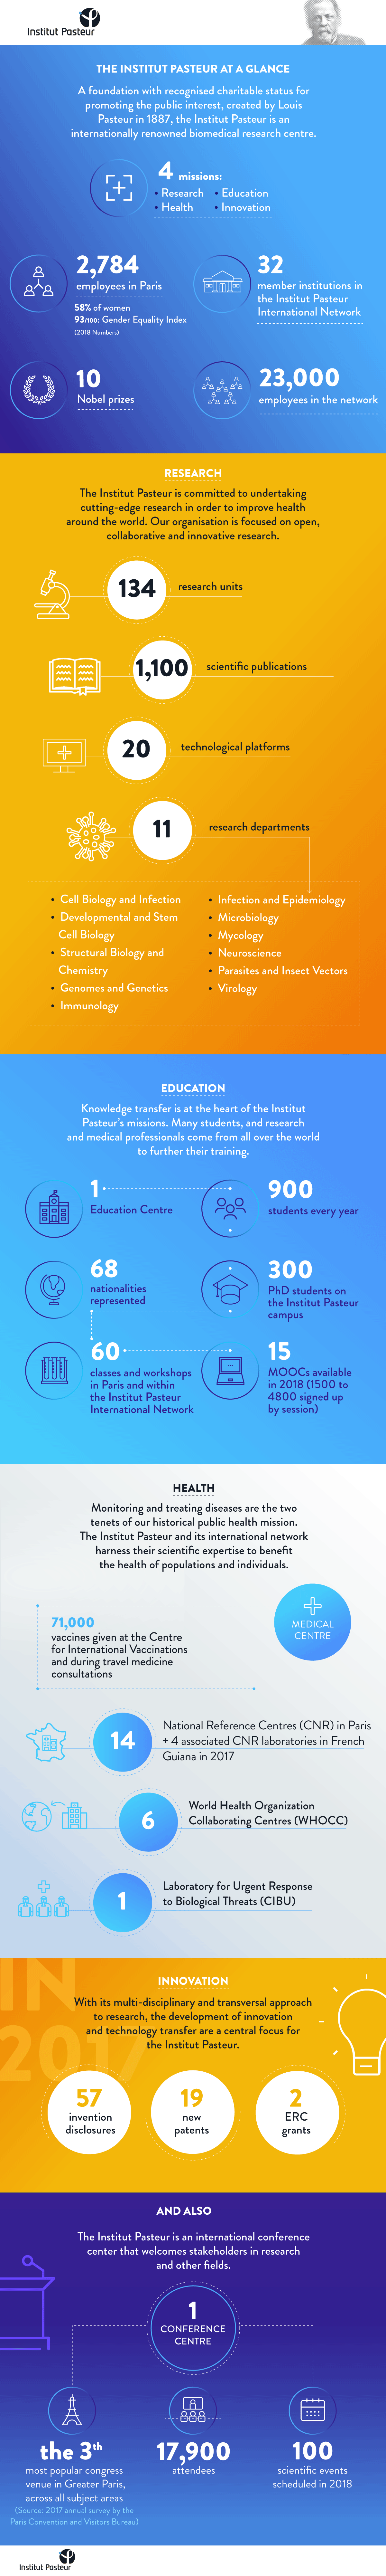 The Institut Pasteur at a glance - 2019